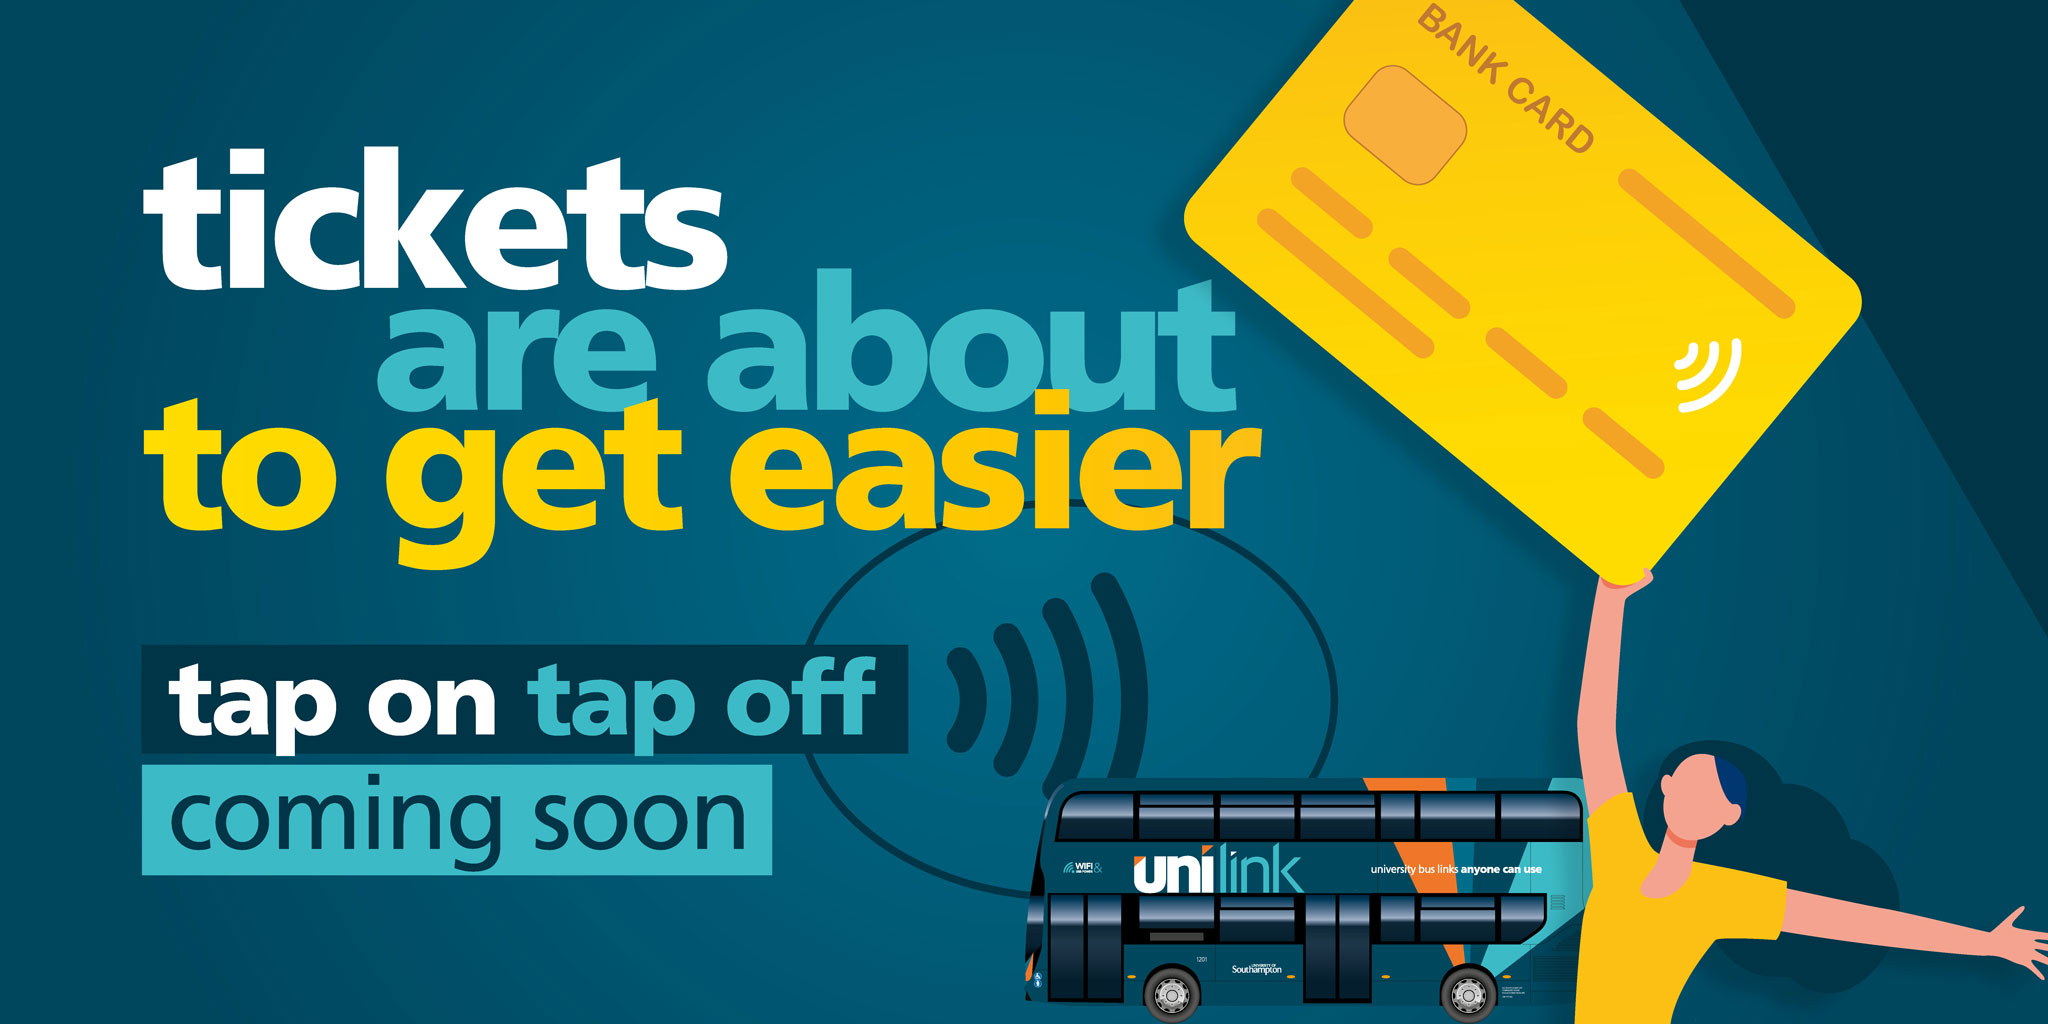 Image of a Unilink bus with a person holding a bank card and text 'tickets are about to get easier. Tap on tap off coming soon'